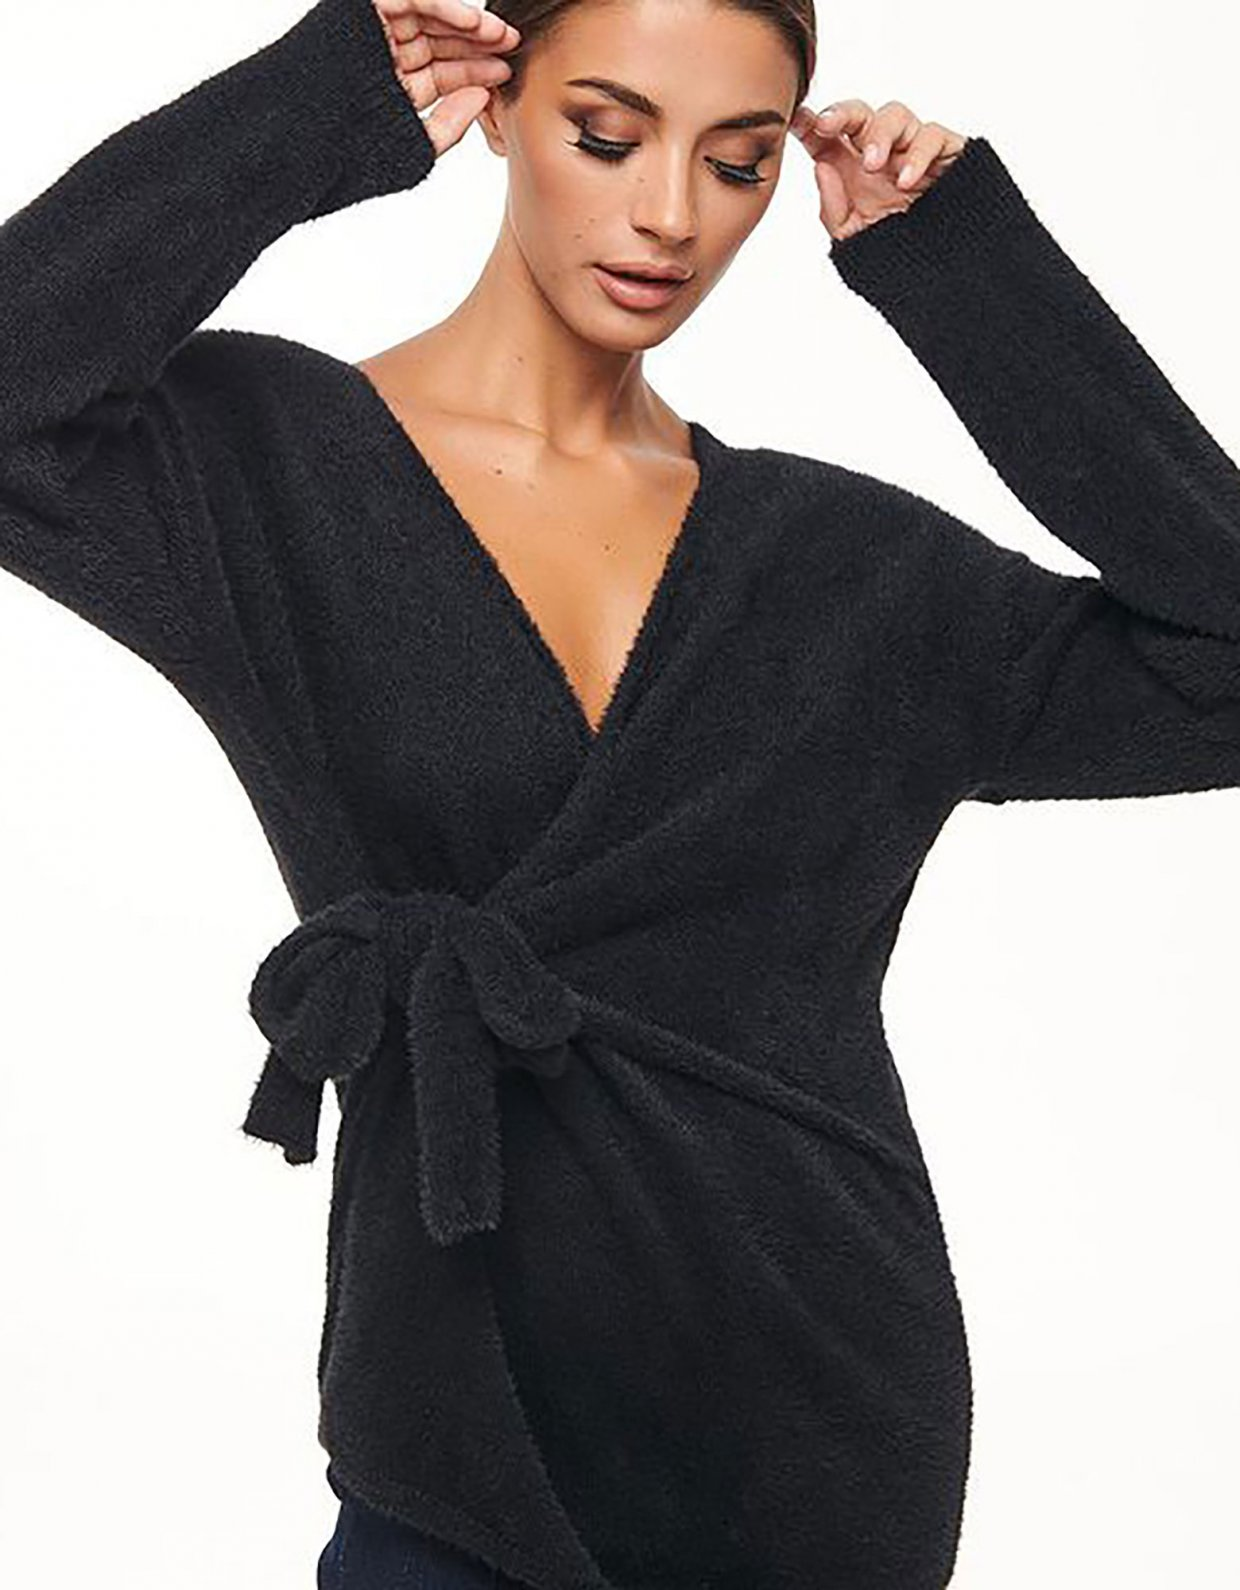 Combos Knitwear Combos W62 – Black furry wrap top